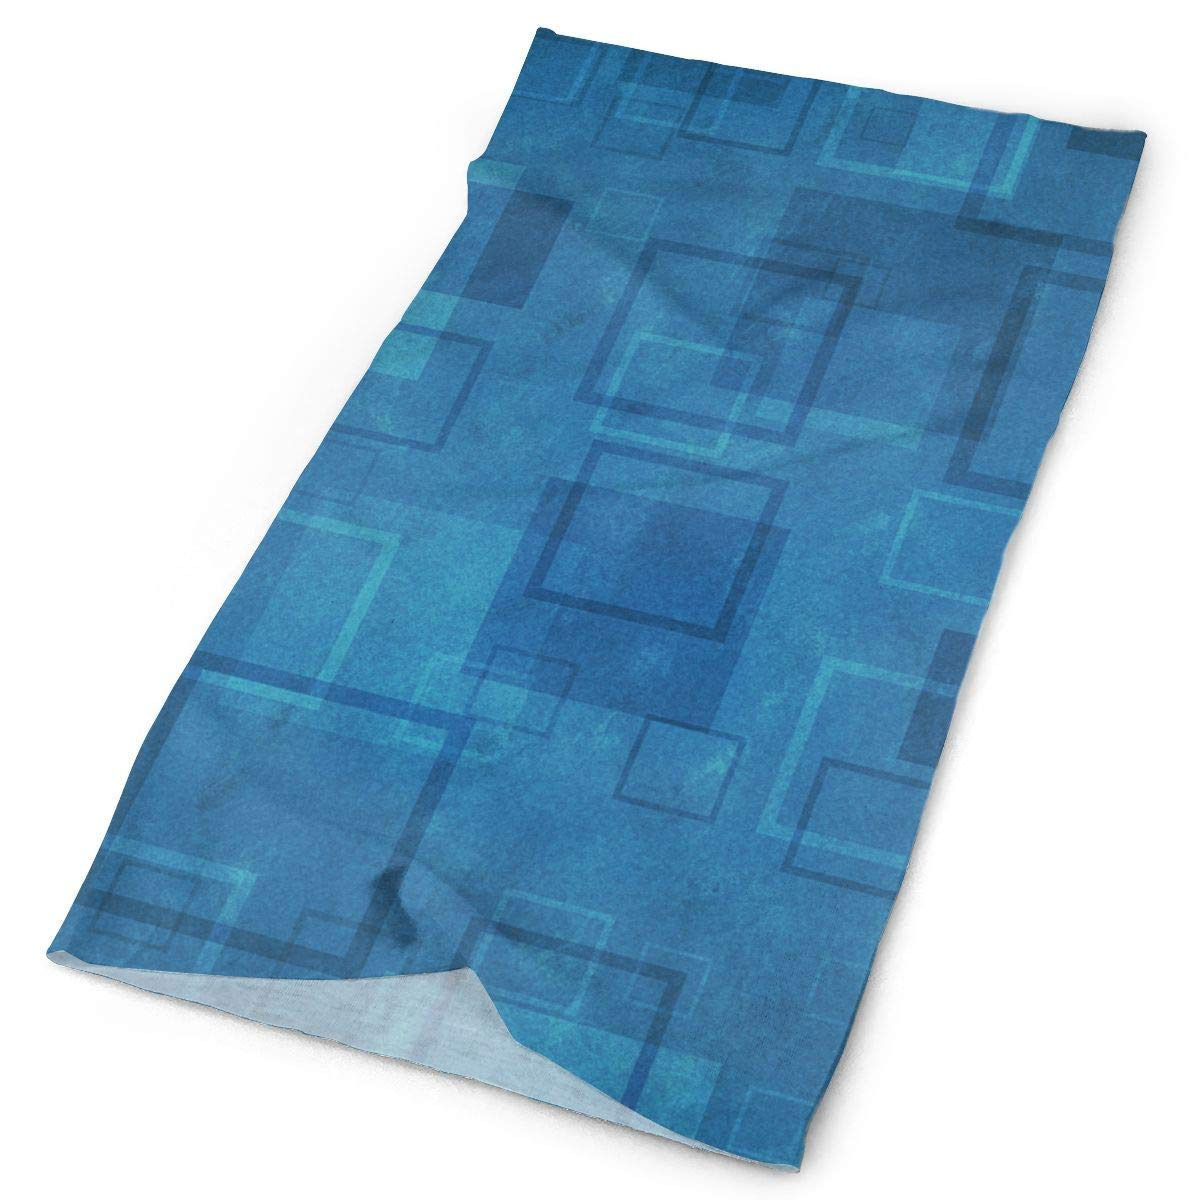 Cool Blue Square Unisex Fashion Quick-Drying Microfiber Headdress Outdoor Magic Scarf Neck Neck Scarf Hooded Scarf Super Soft Handle